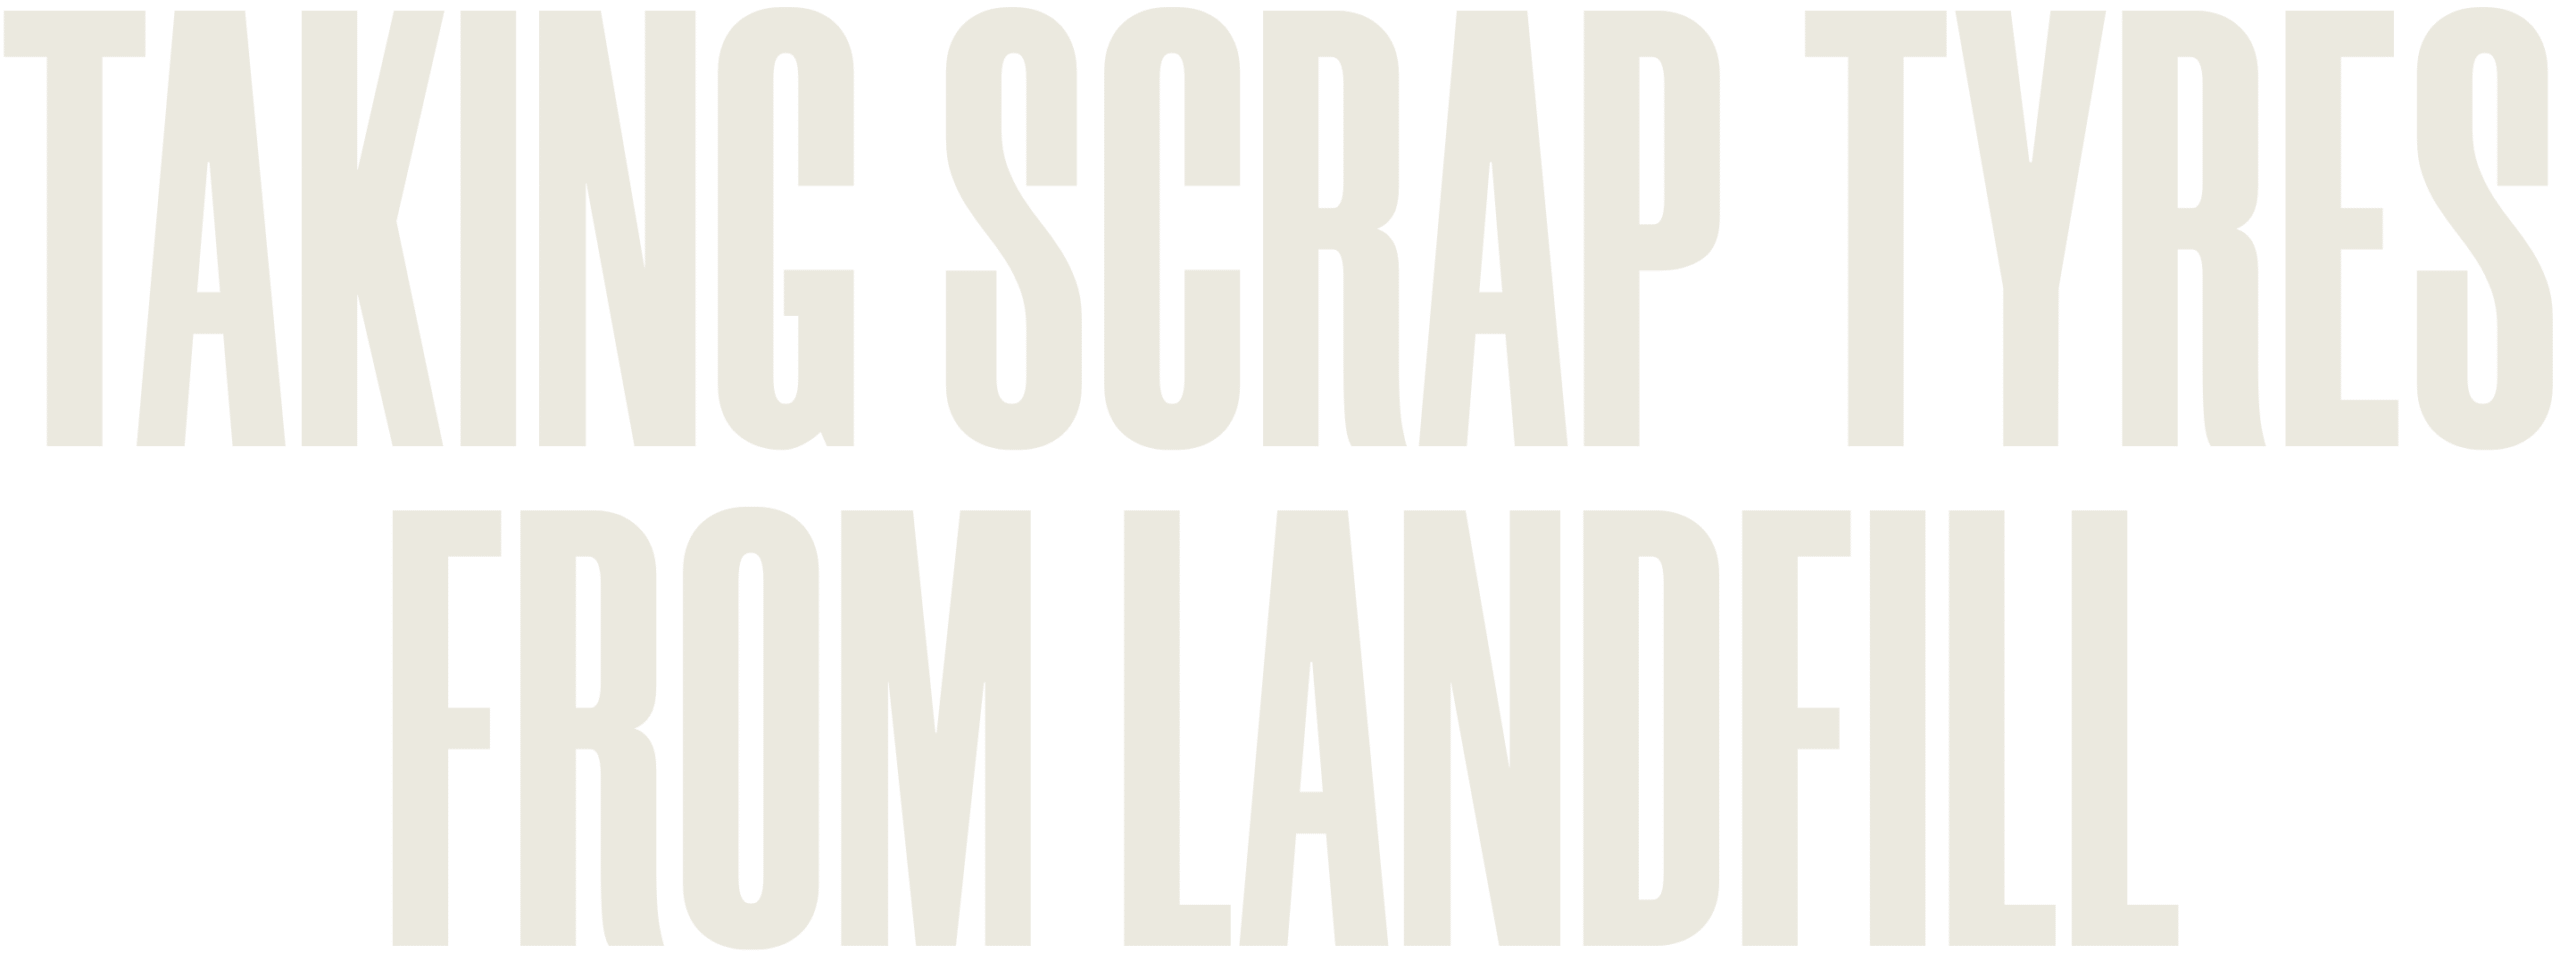 Taking scrap tyres from landfill